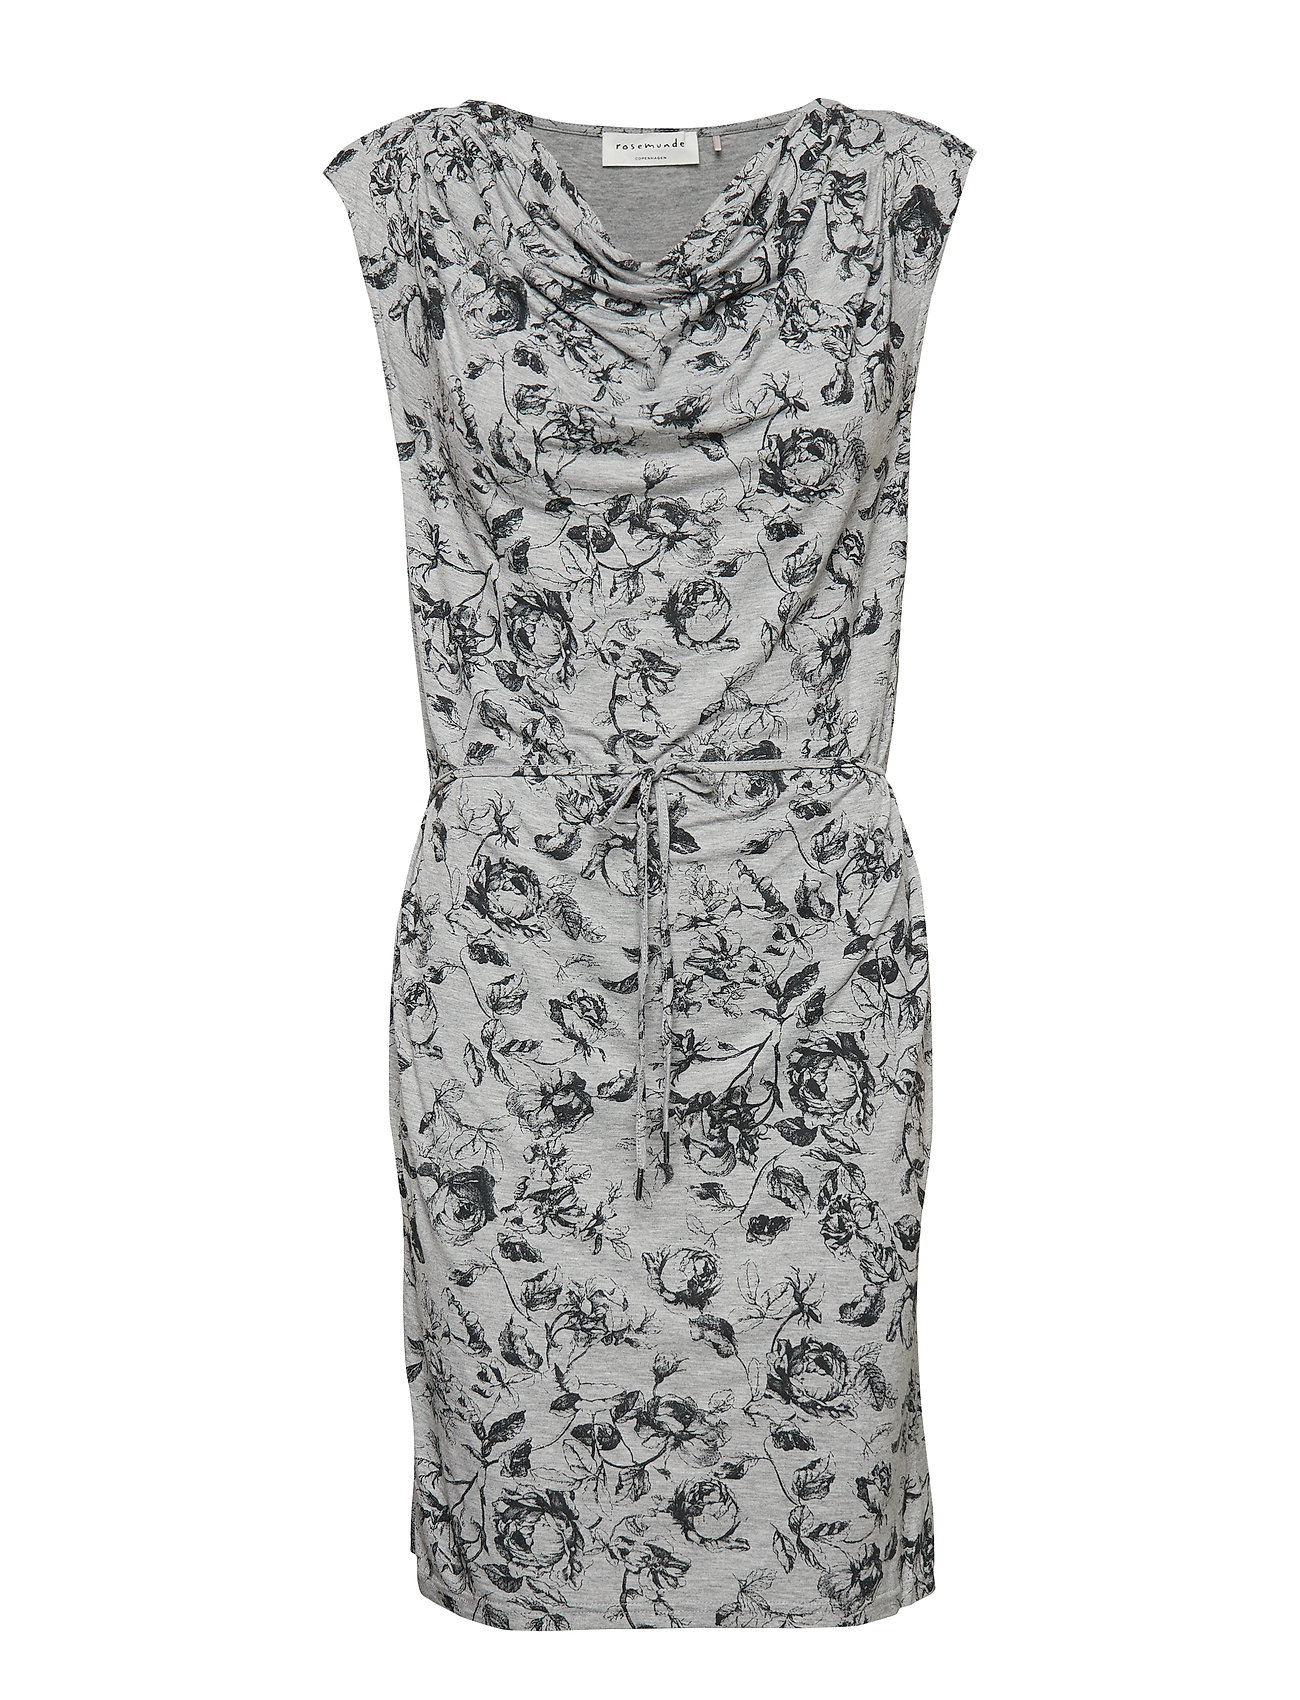 Rosemunde Dress ss - GREY VINTAGE ROSE PRINT